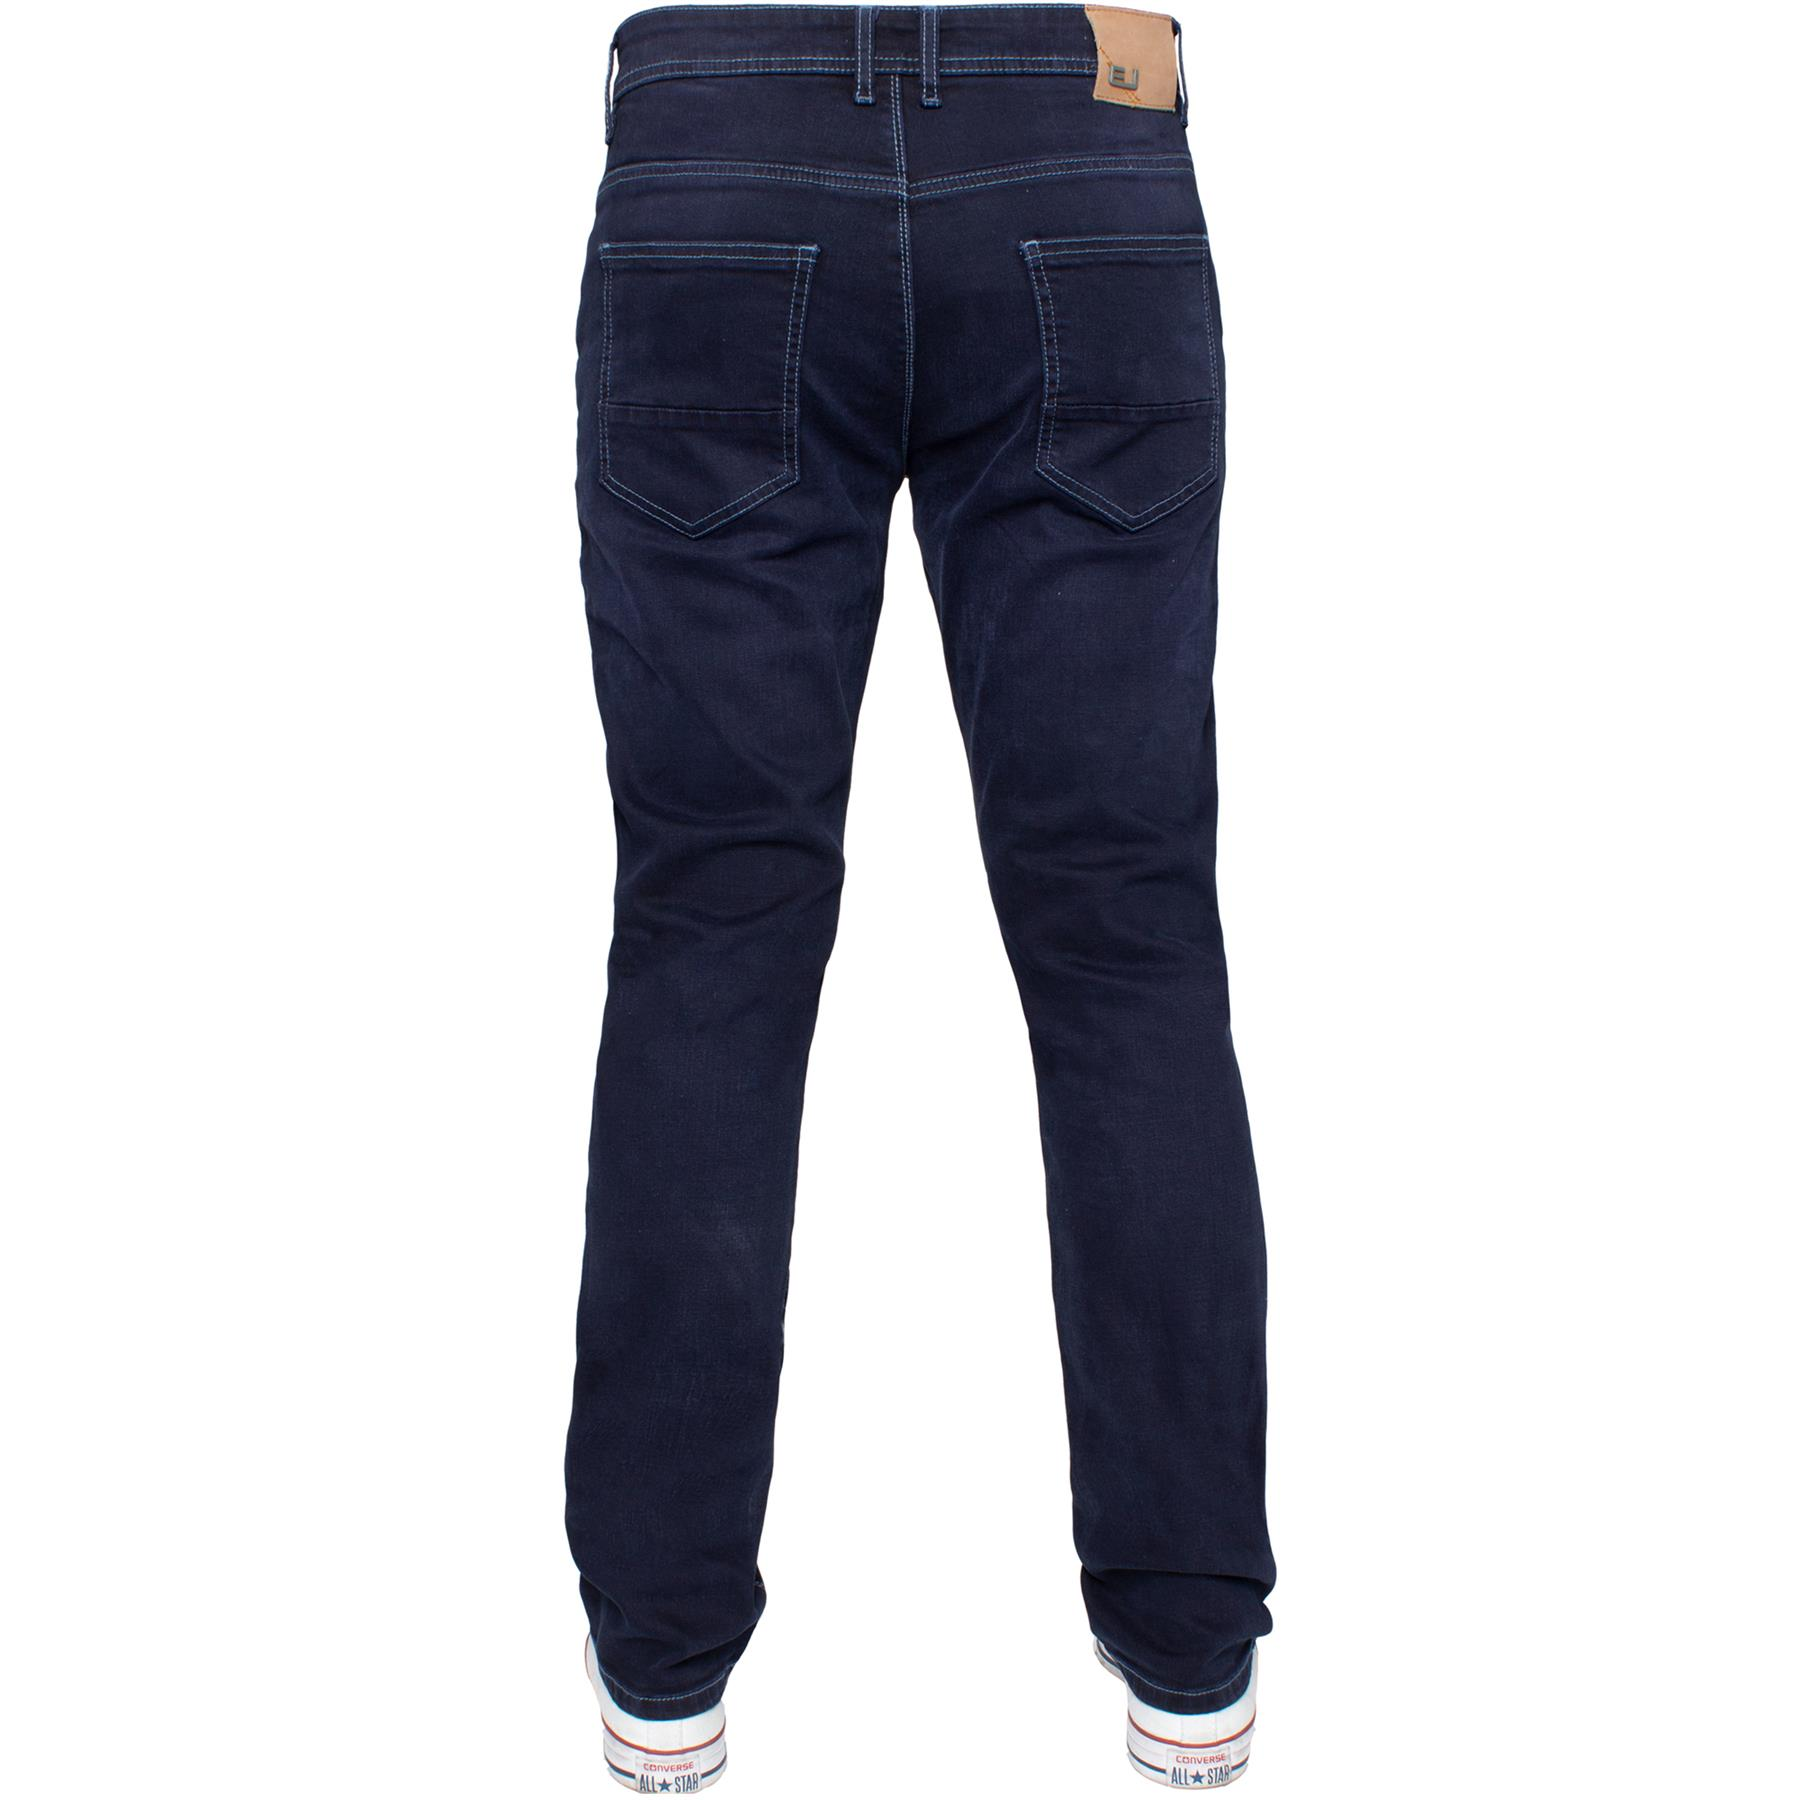 Eto-Designer-Mens-Tapered-Jeans-Slim-Fit-Stretch-Denim-Trouser-Pants-All-Waists thumbnail 24